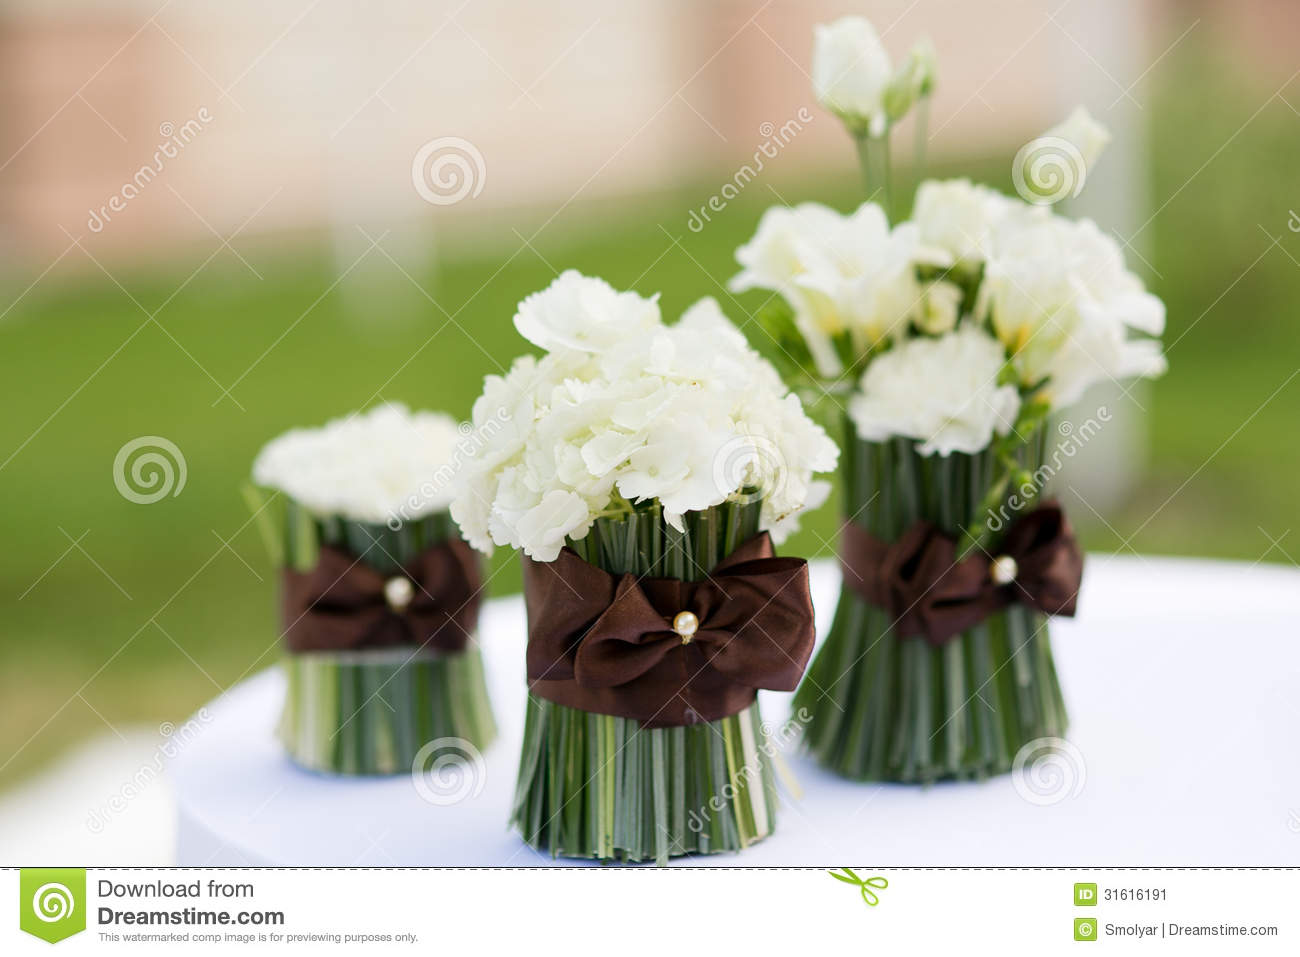 Flower Decor flower decoration stock photo - image: 47928163